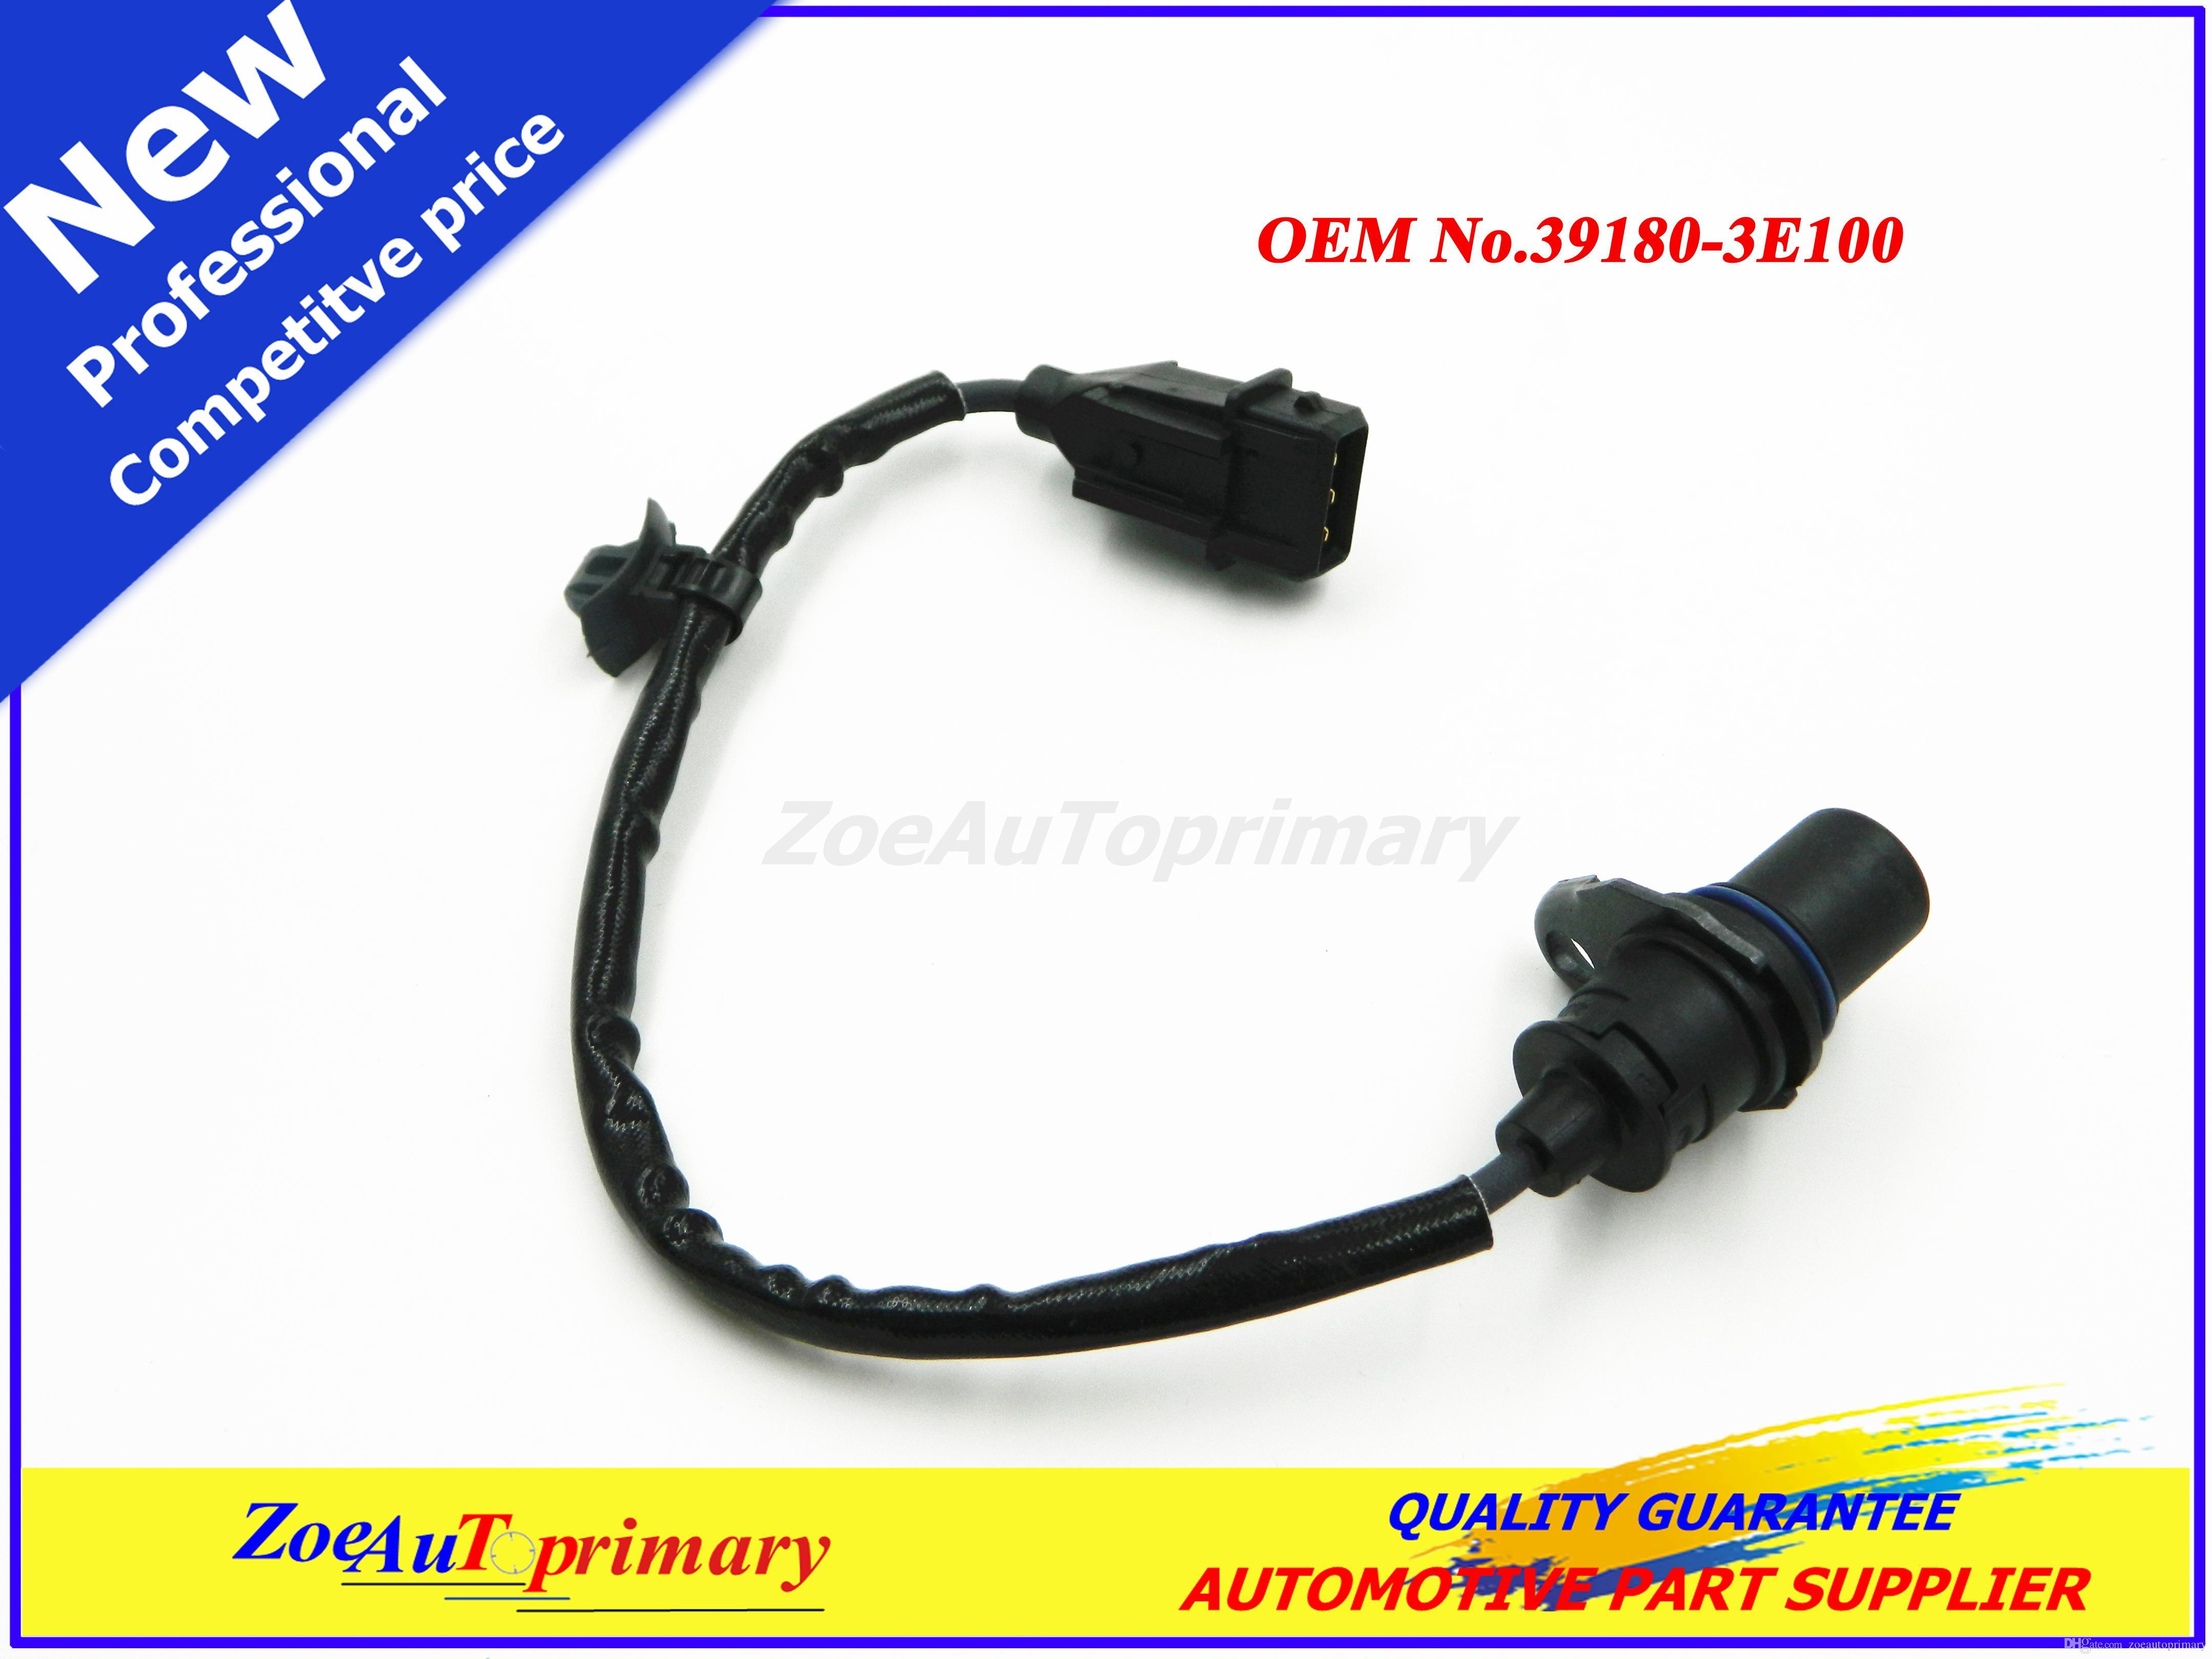 2018 39180 3E100 Crankshaft Position Sensor 39180 3E100,391803E100 For  Hyundai Santa Fe07 09 Kia Optima06 10 Rondo 07 10 2.7L 2656CC From  Zoeautoprimary, ...